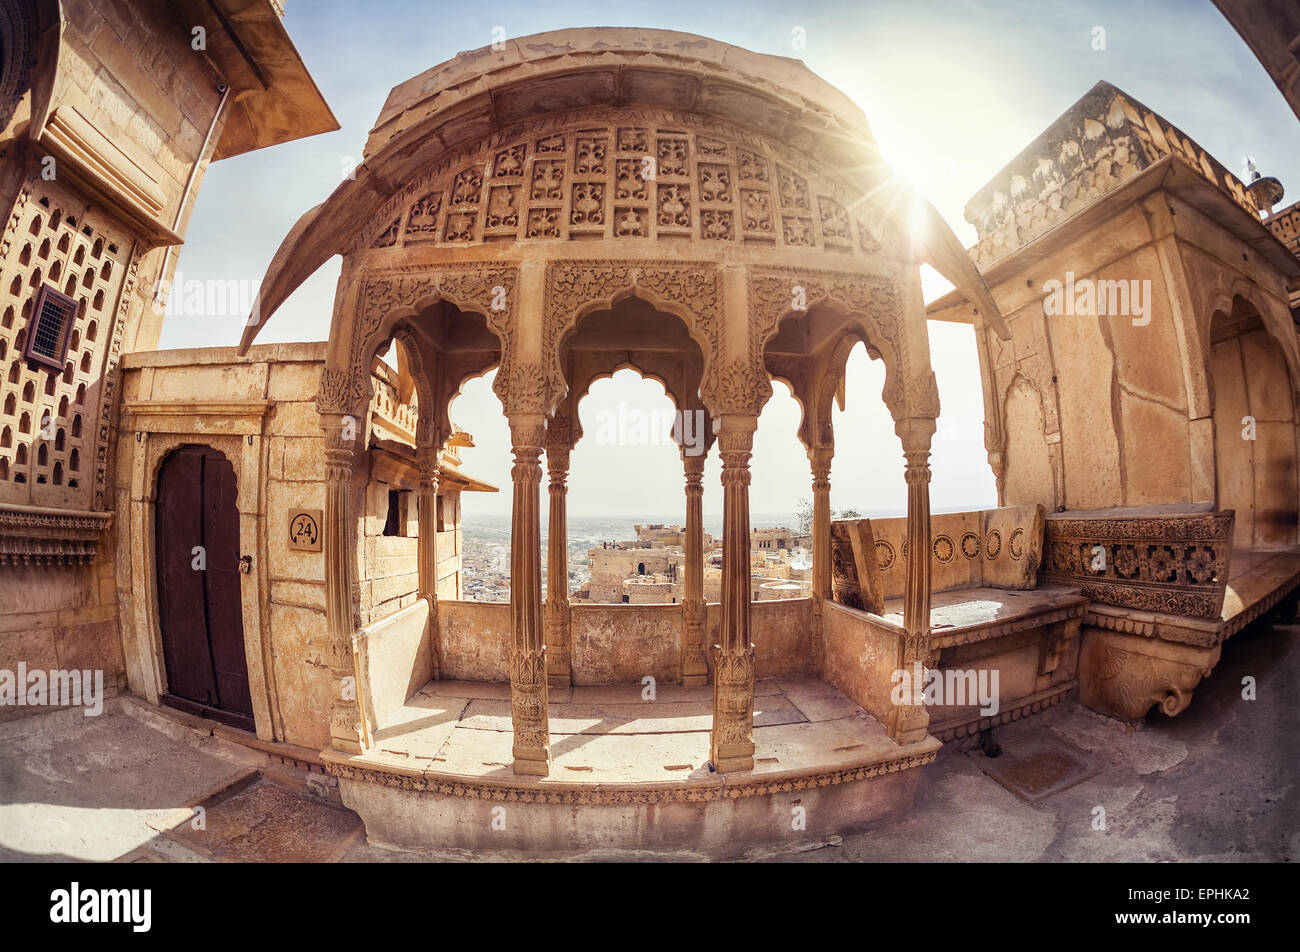 Zenana mahal in City Palace museum of Jaisalmer fort, Rajasthan, India - Stock Image